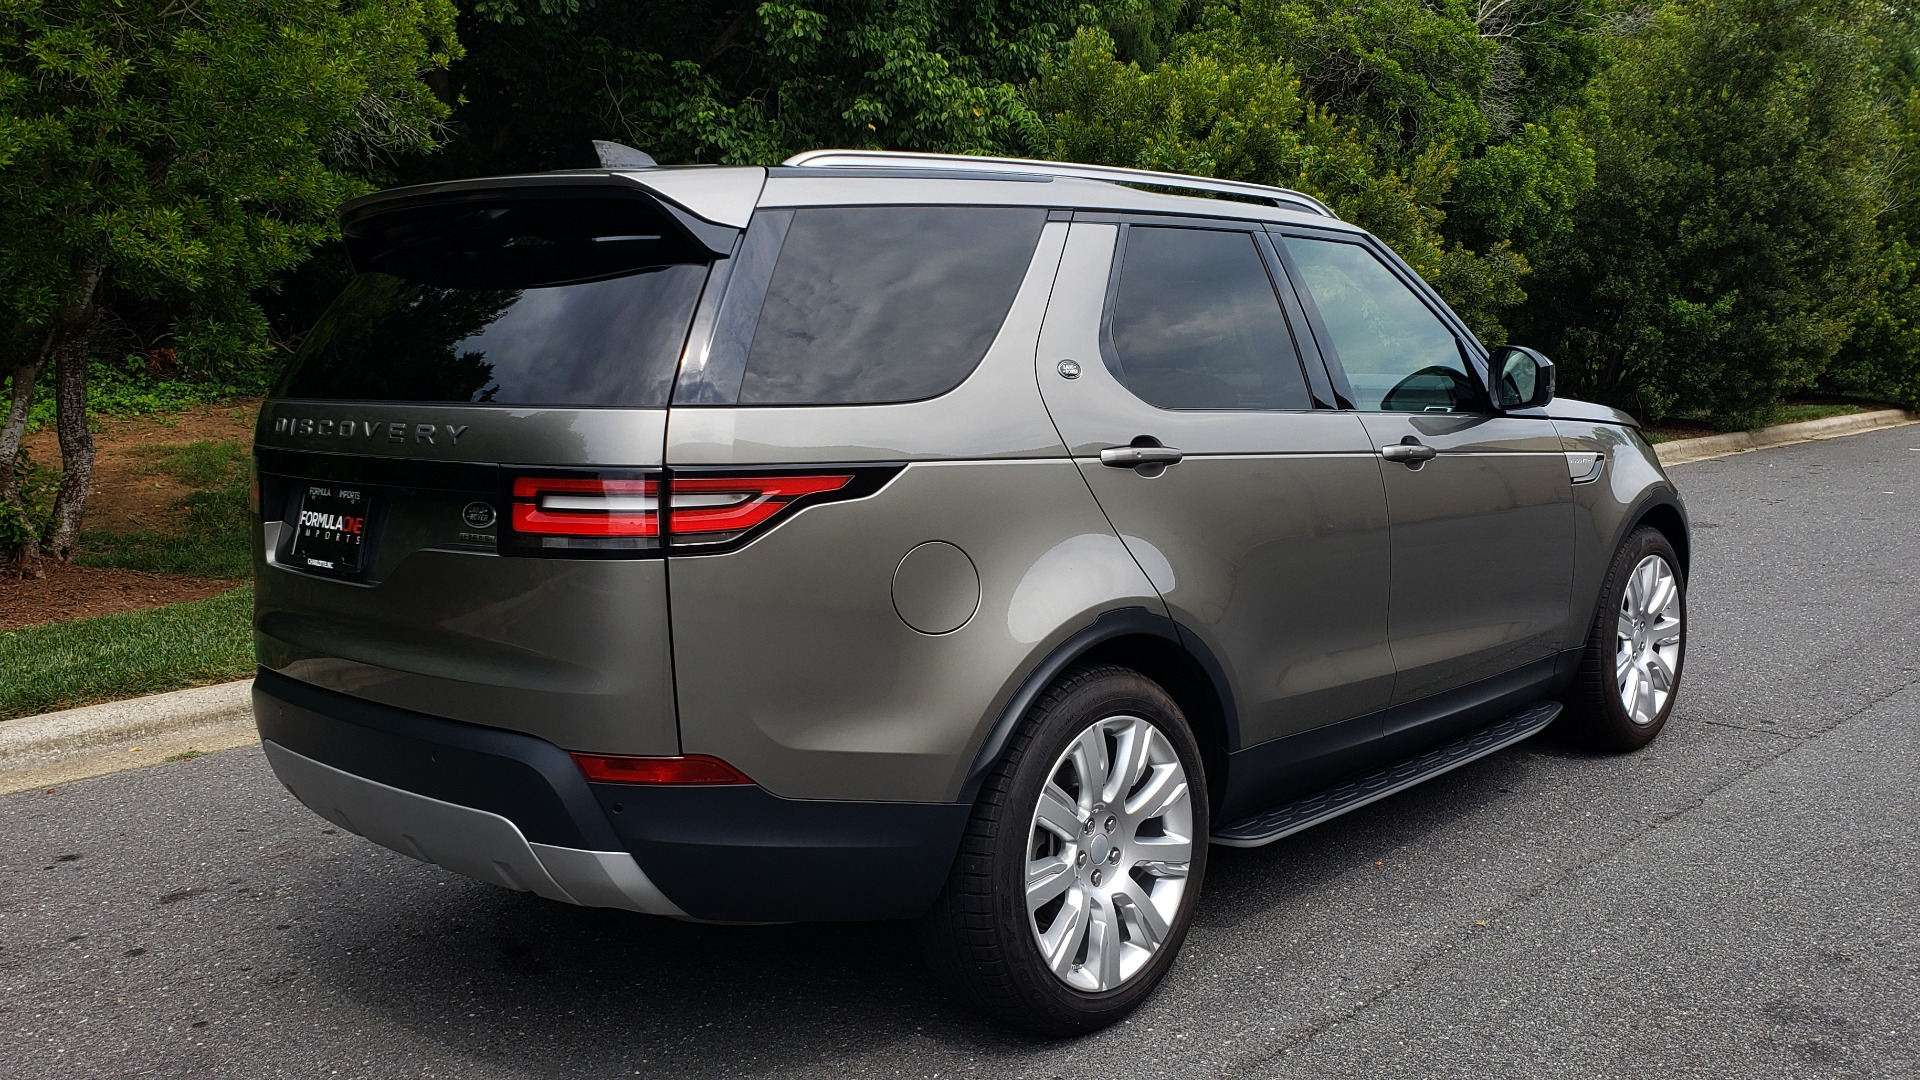 Used 2018 Land Rover DISCOVERY HSE / NAV / DRV PKG / VISION / CLIMATE / CAPABILITY / 3-ROW for sale Sold at Formula Imports in Charlotte NC 28227 6